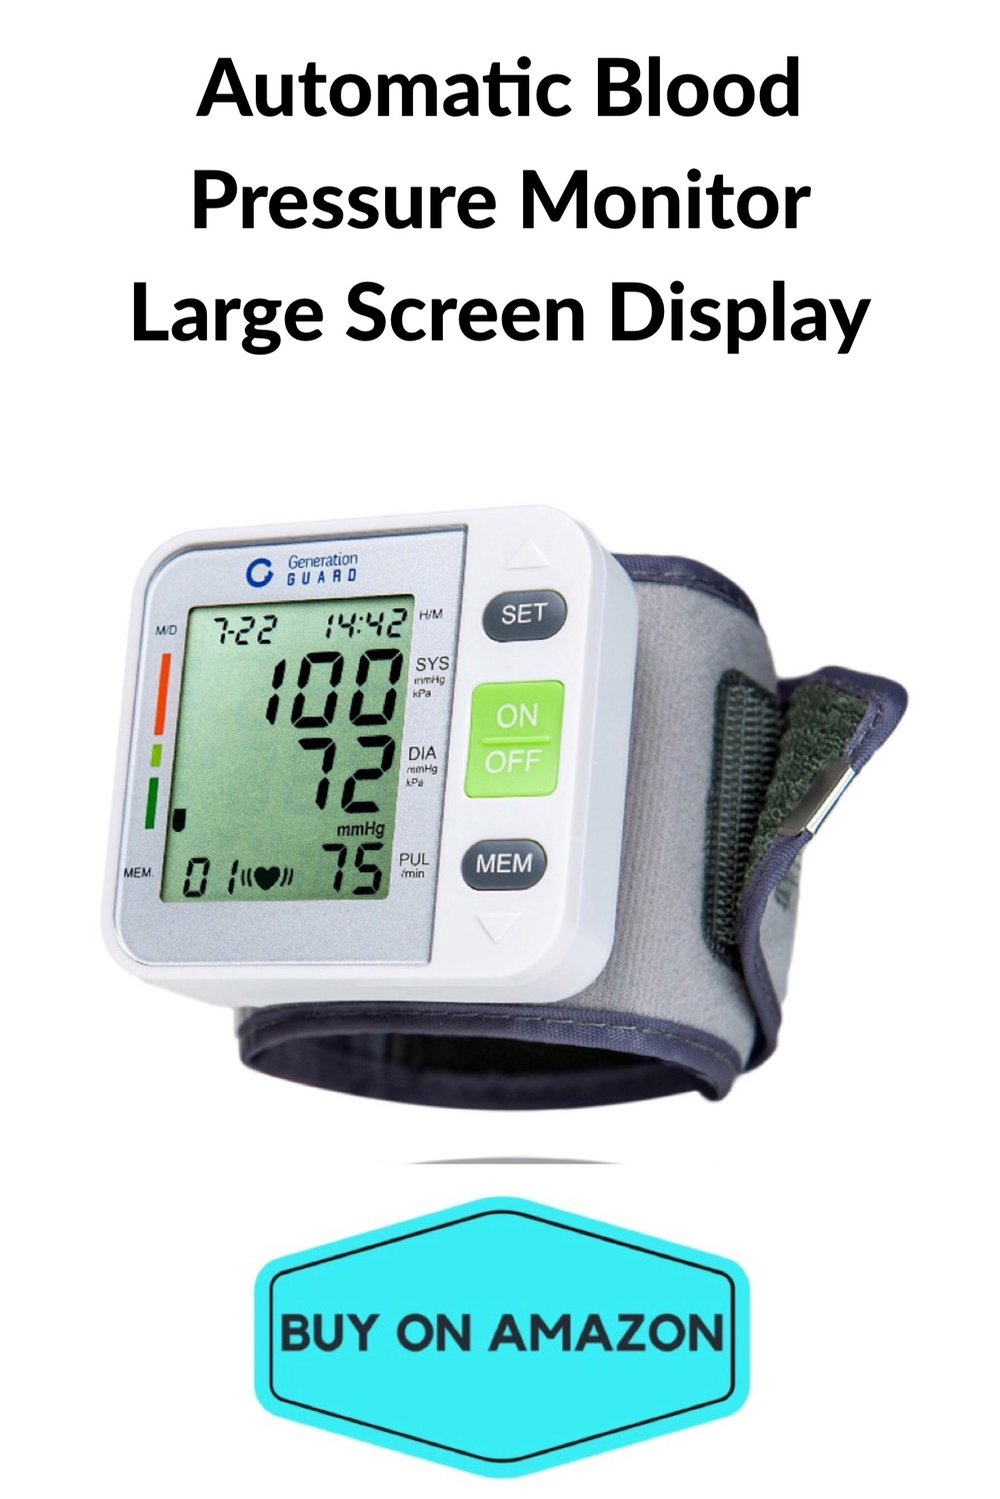 Automatic Blood Pressure Monitor Large Screen Display